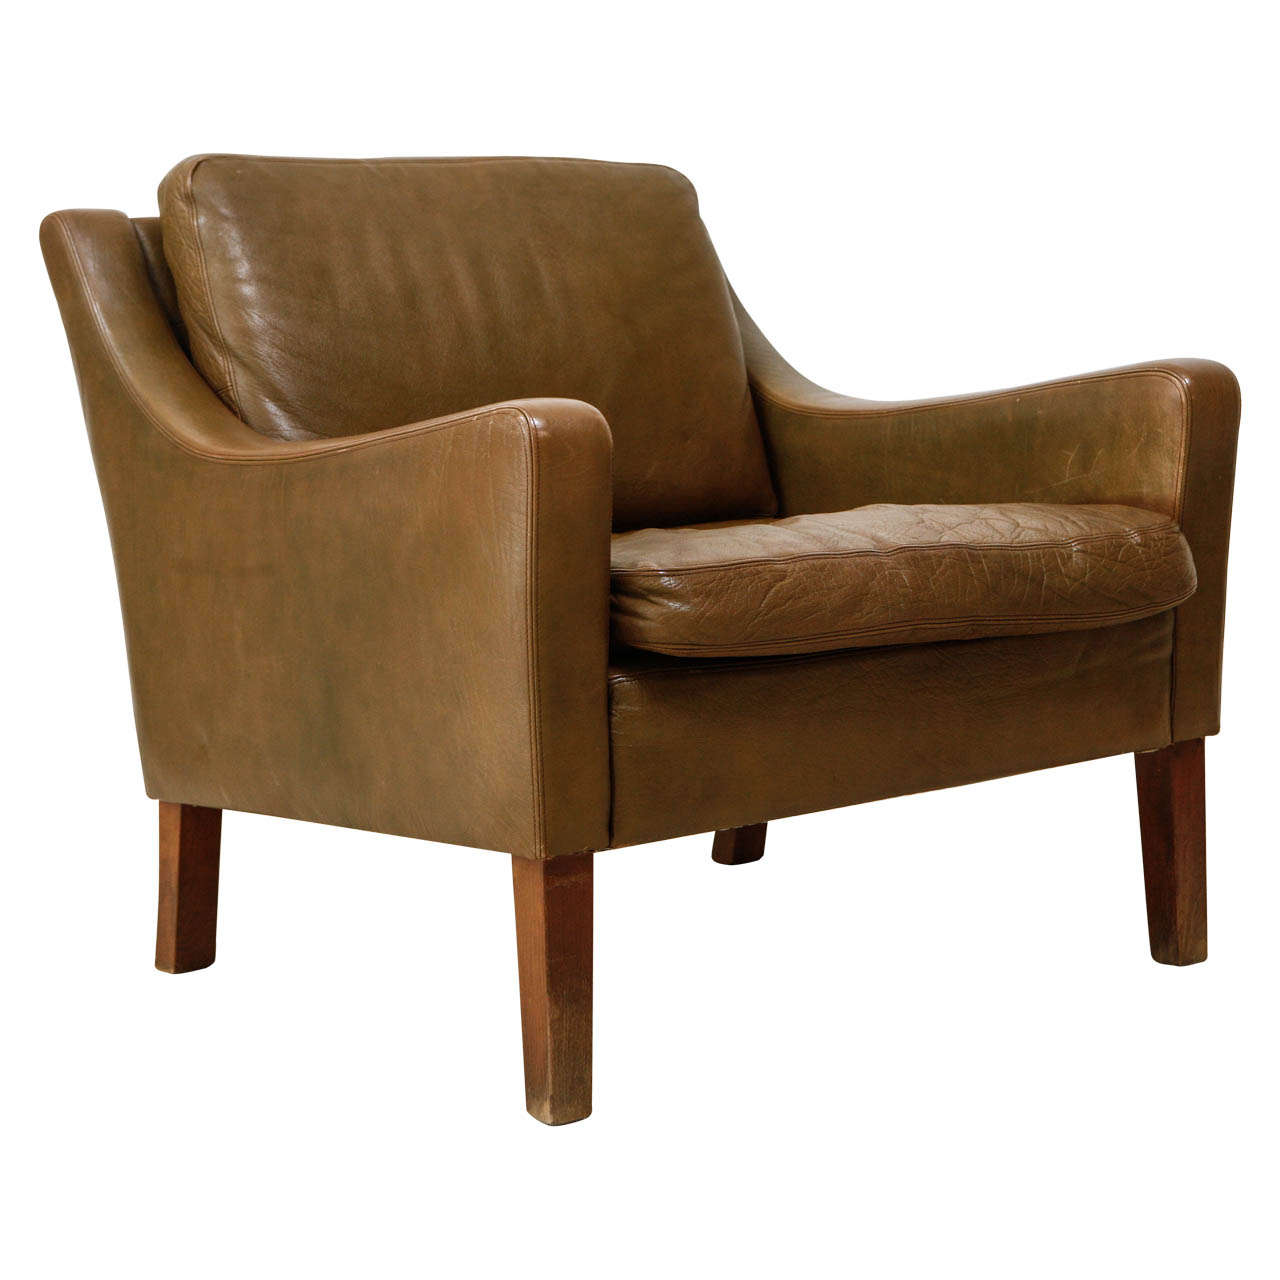 Image of: Leather Danish Lounge Chair